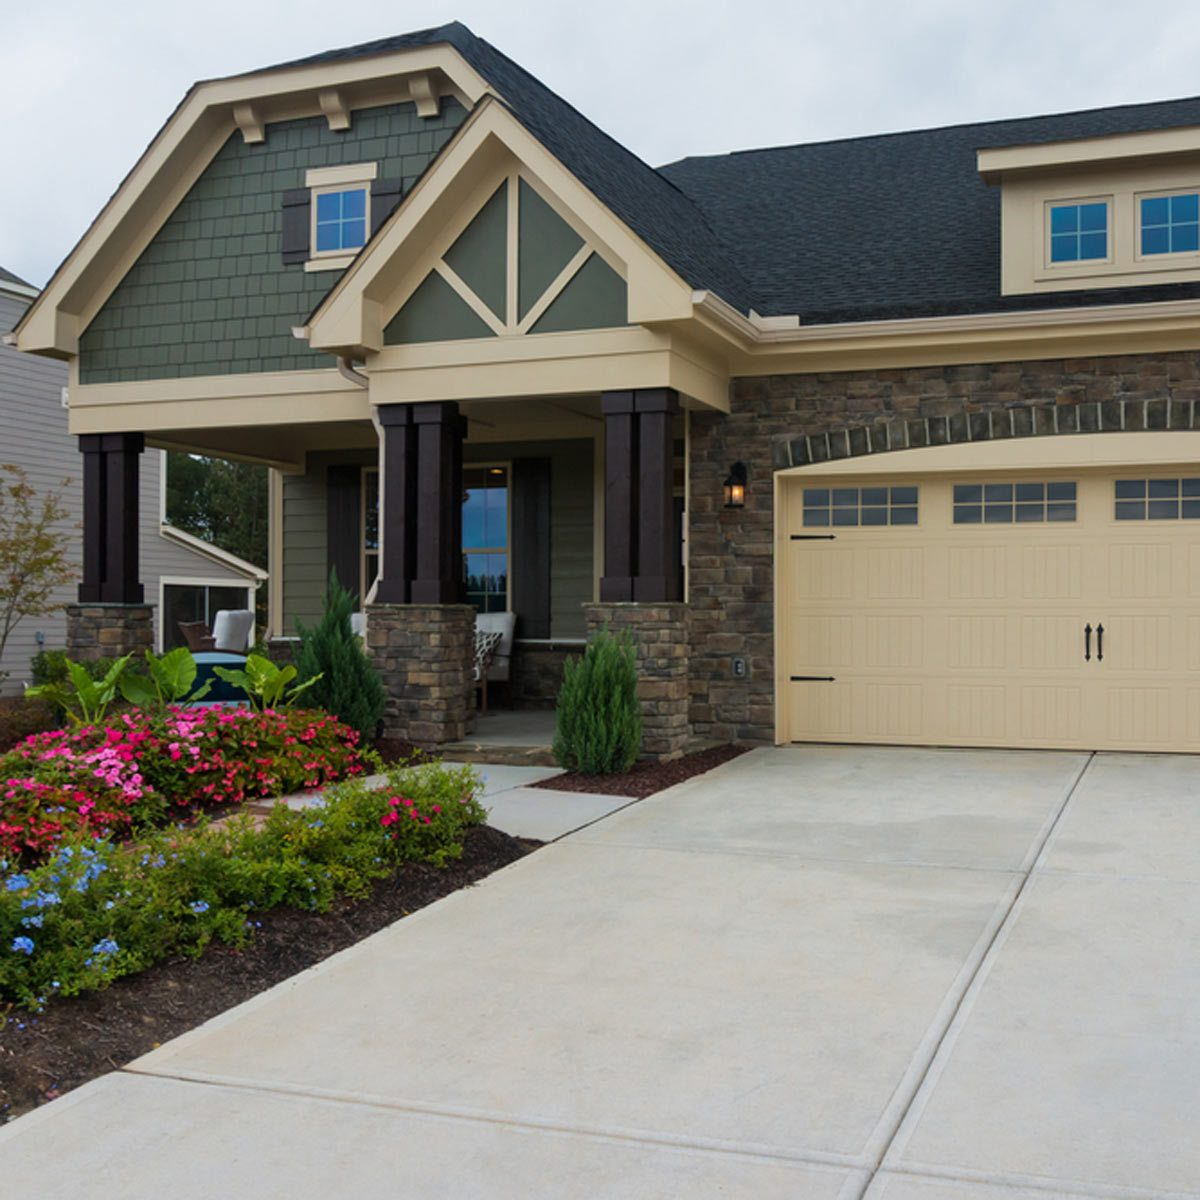 craftsman style home exterior color green popular exterior house colors